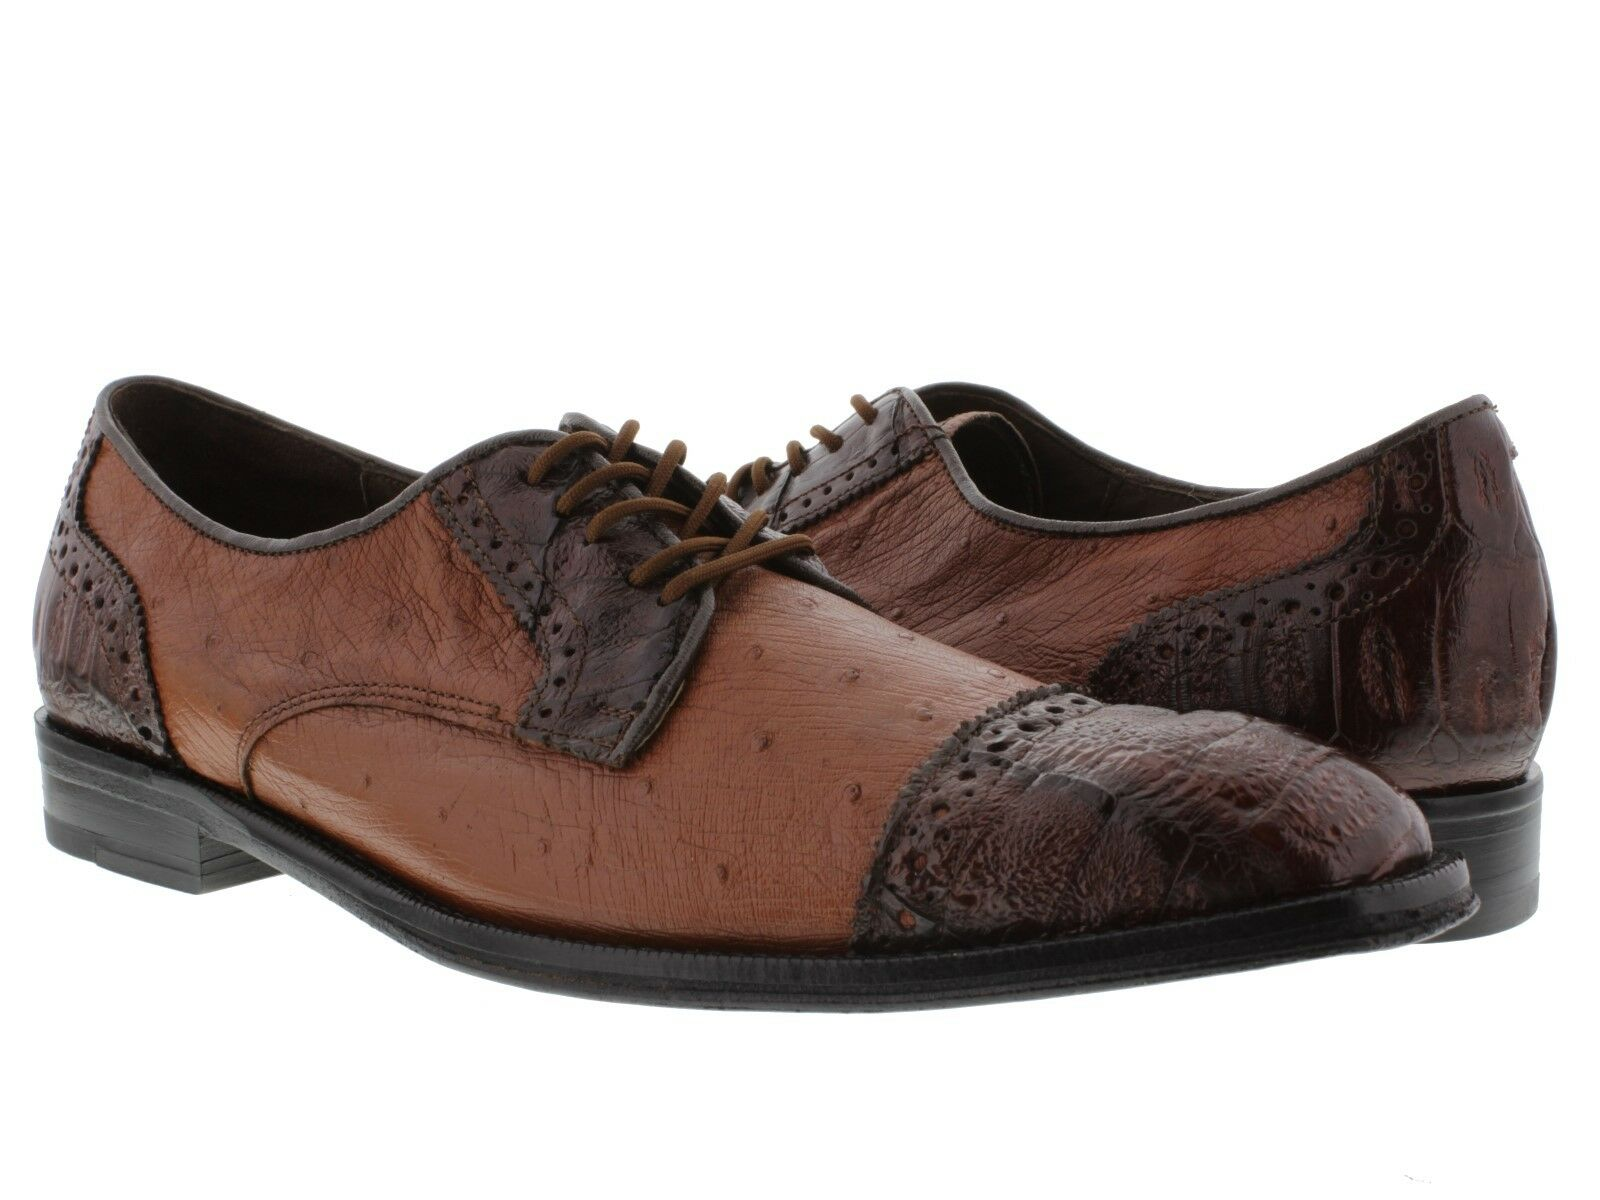 Mens Cognac Brown Crocodile Ostrich Dress shoes Real Exotic Skin Leather Oxfords